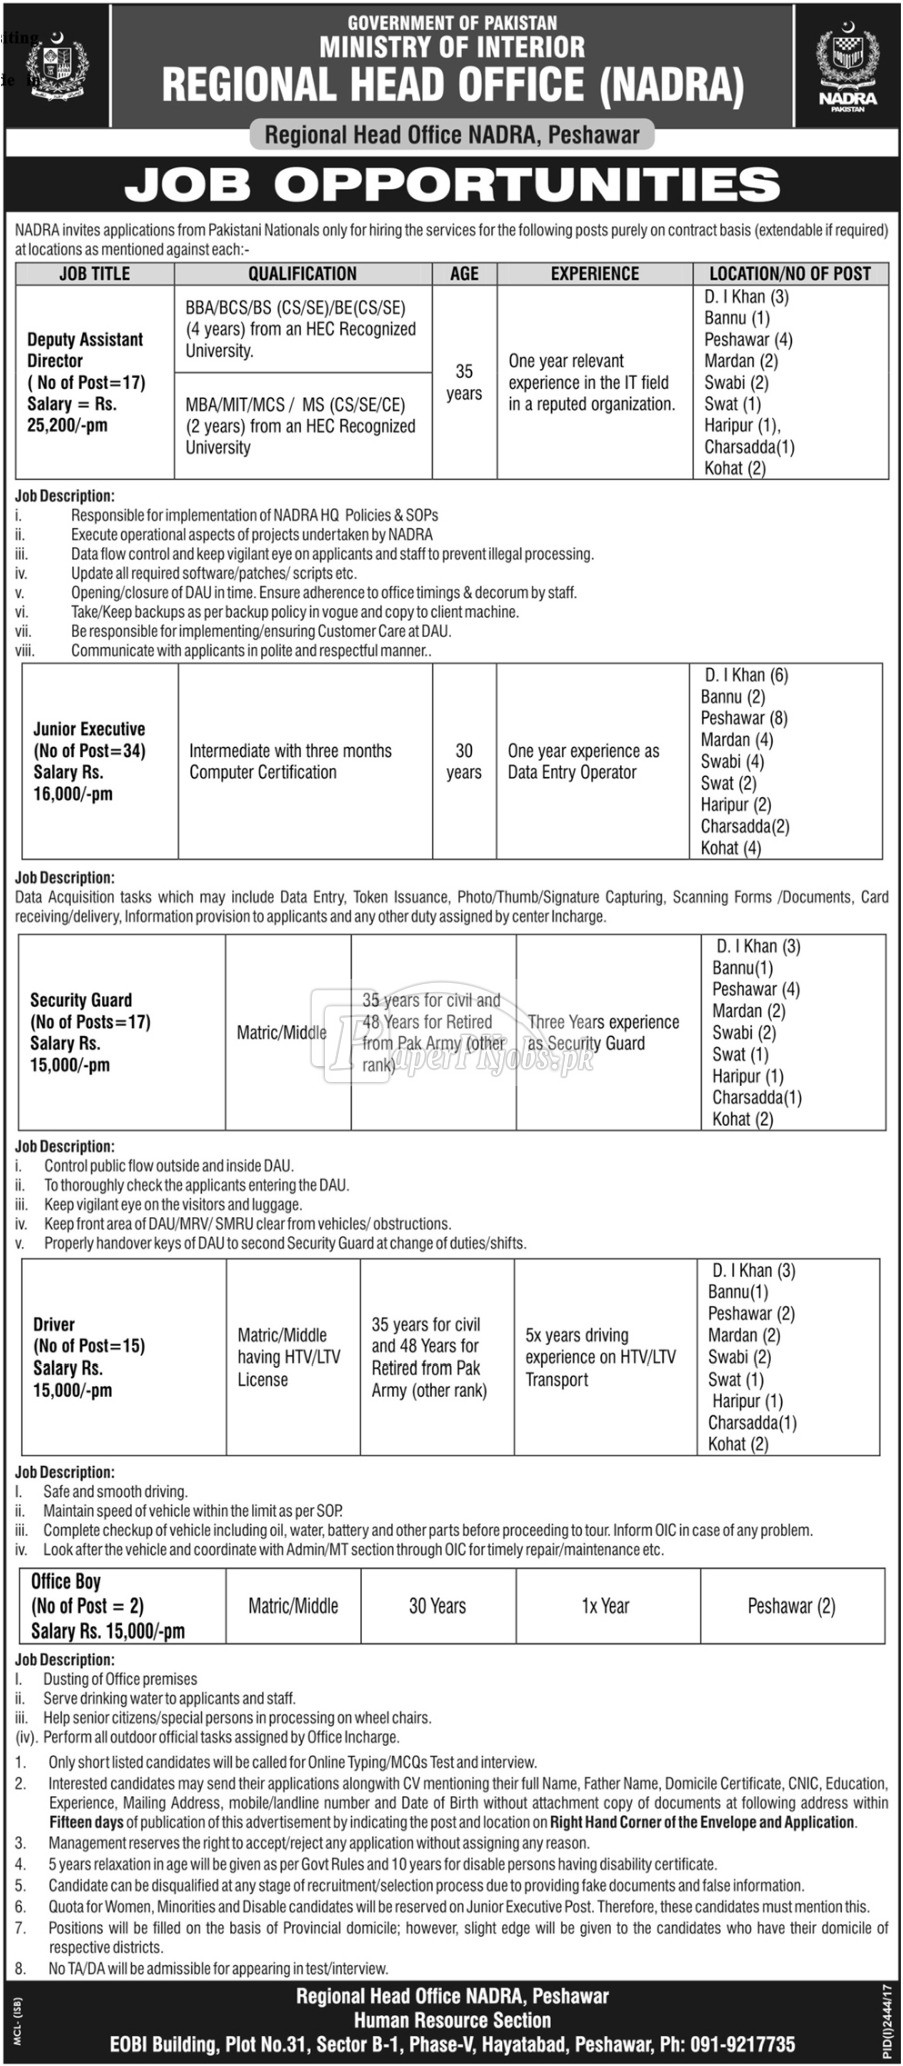 NADRA Peshawar Ministry of Interior Jobs 2017